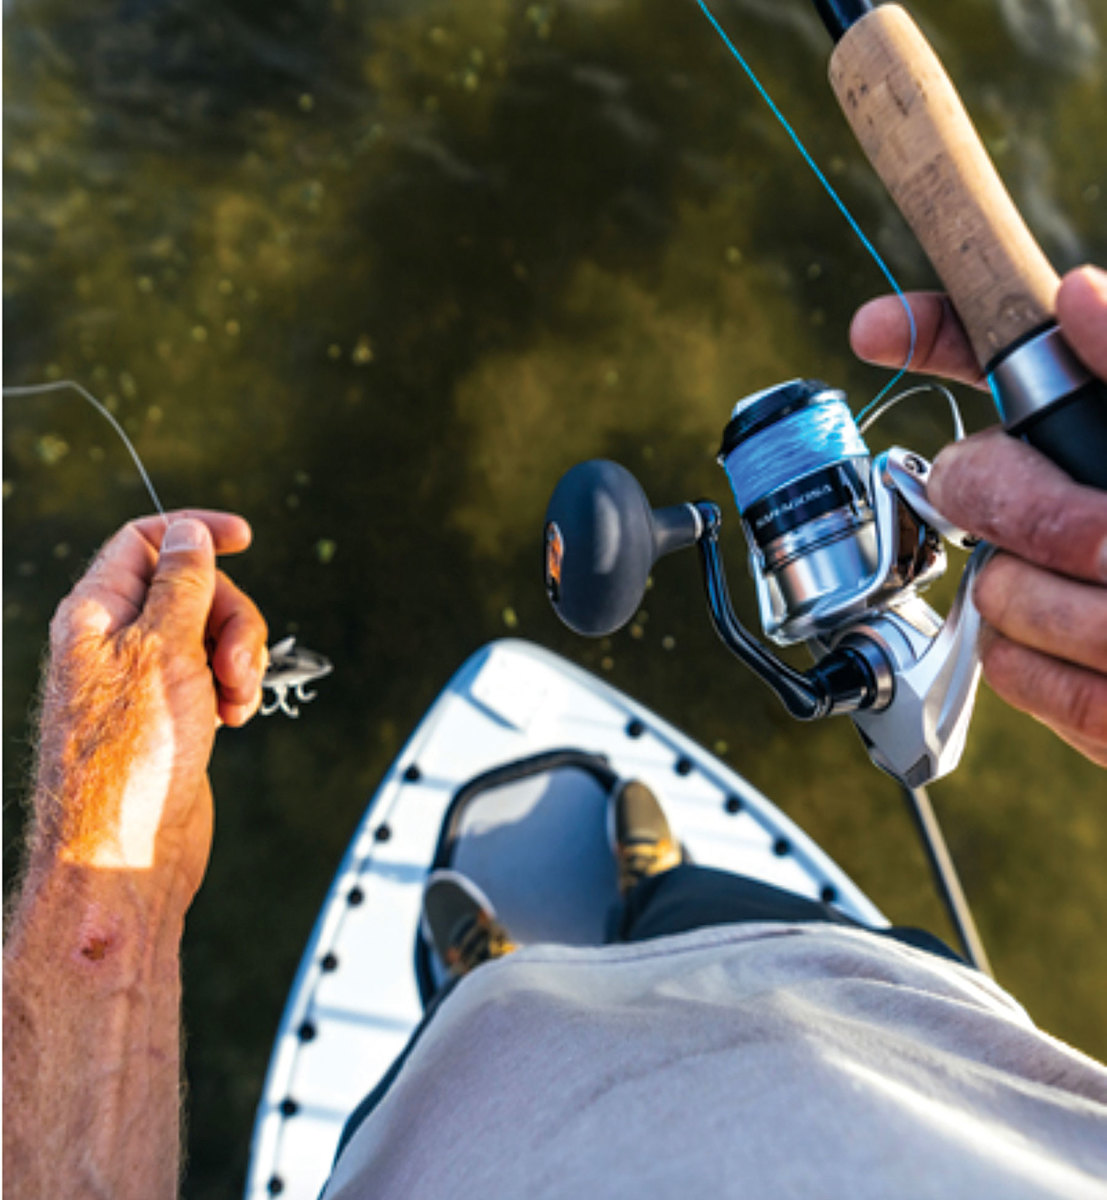 While ICAST and other in-person events are critical for new products, virtual launches give manufacturers more flex when debuting gear.